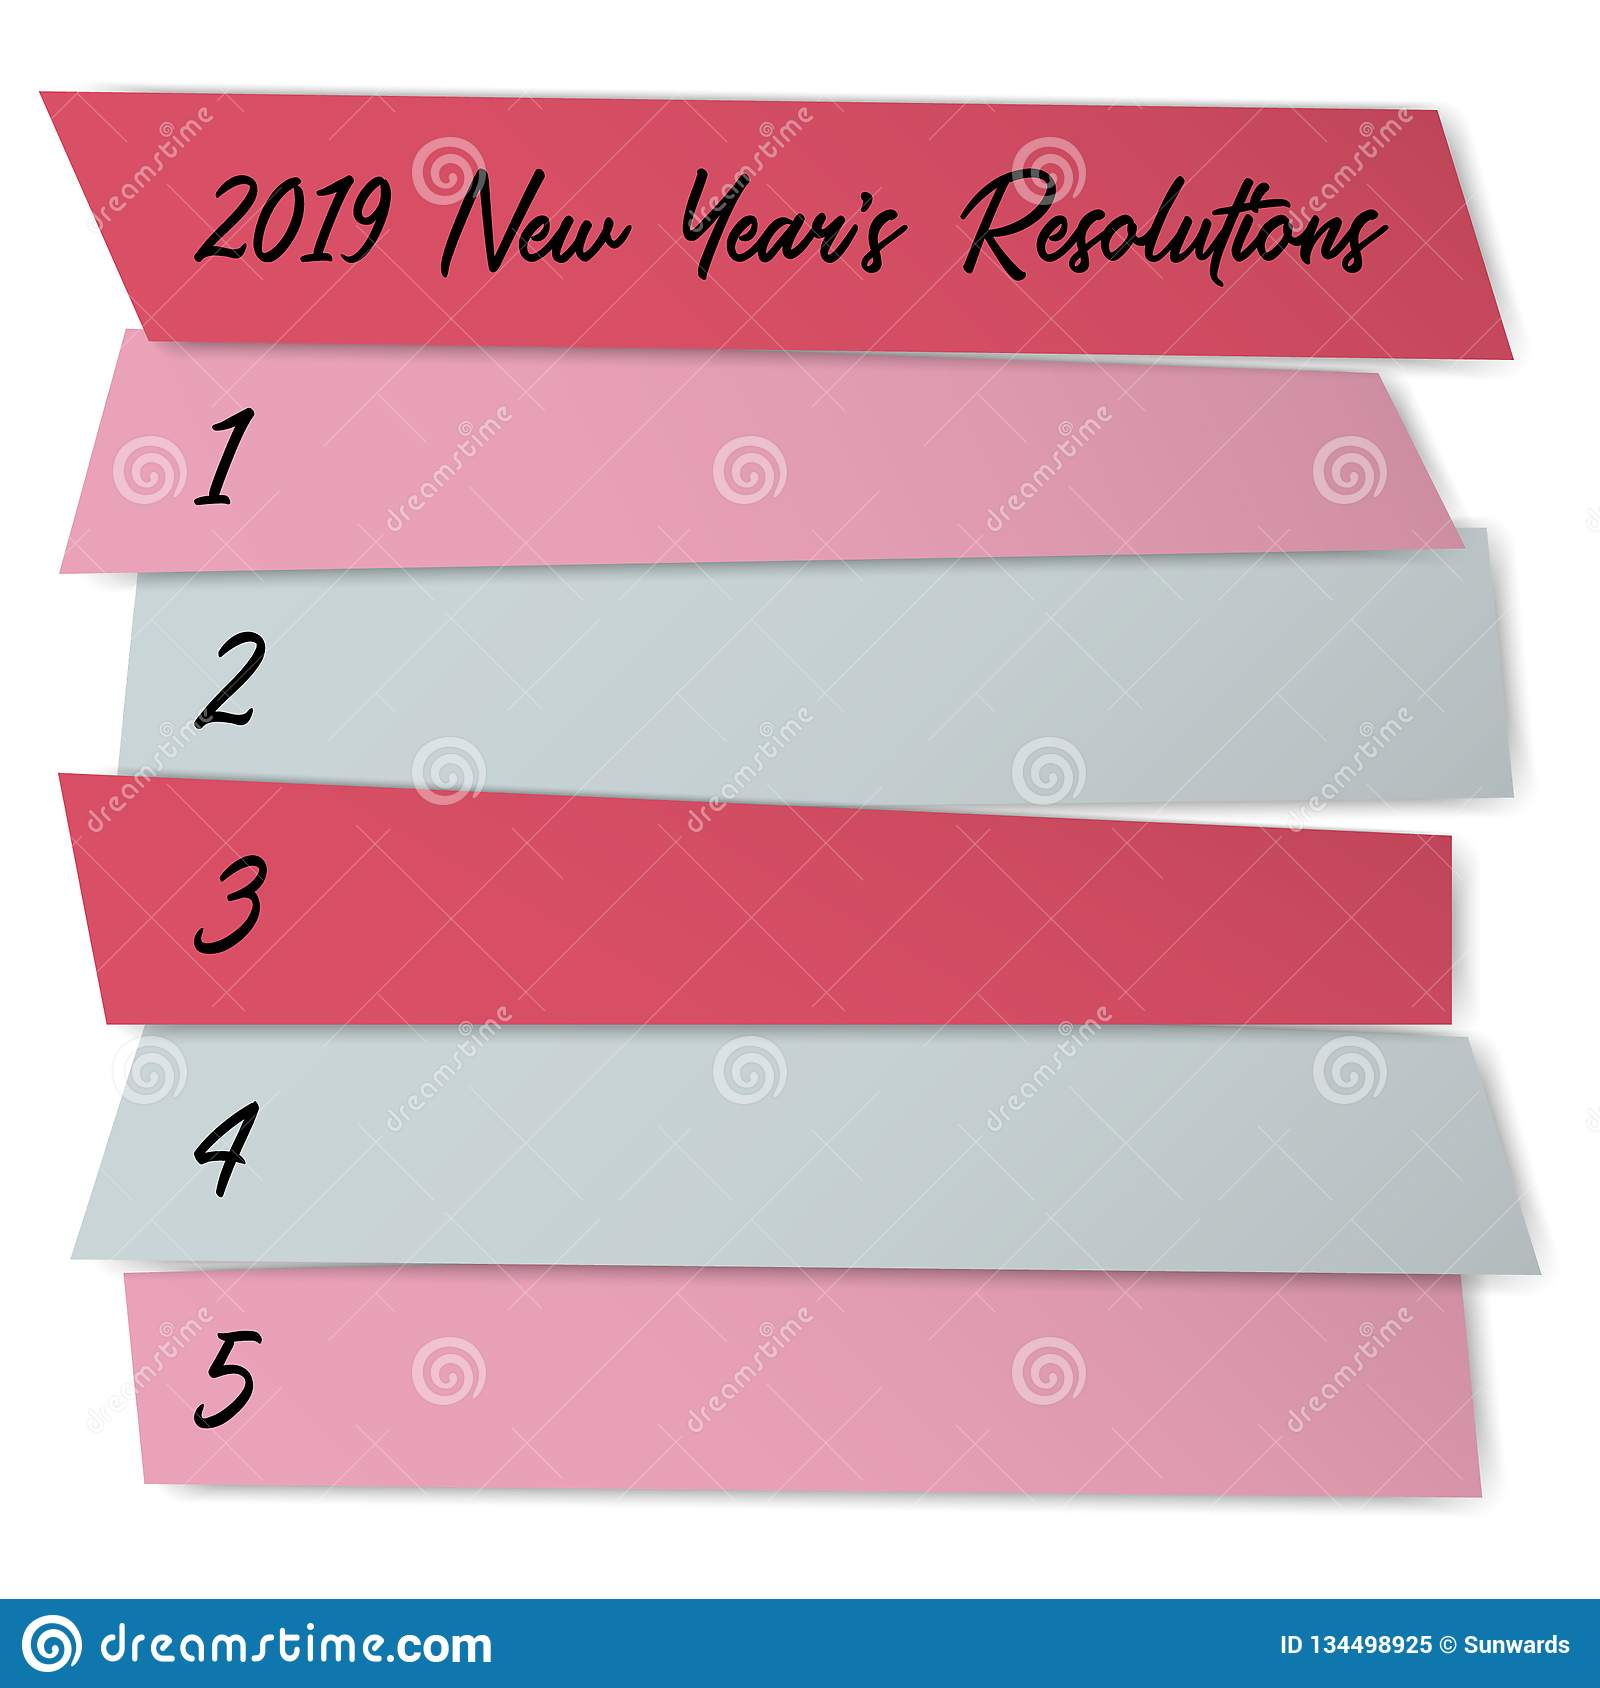 New Year Resolutions List Vector Template For Plans. Stock